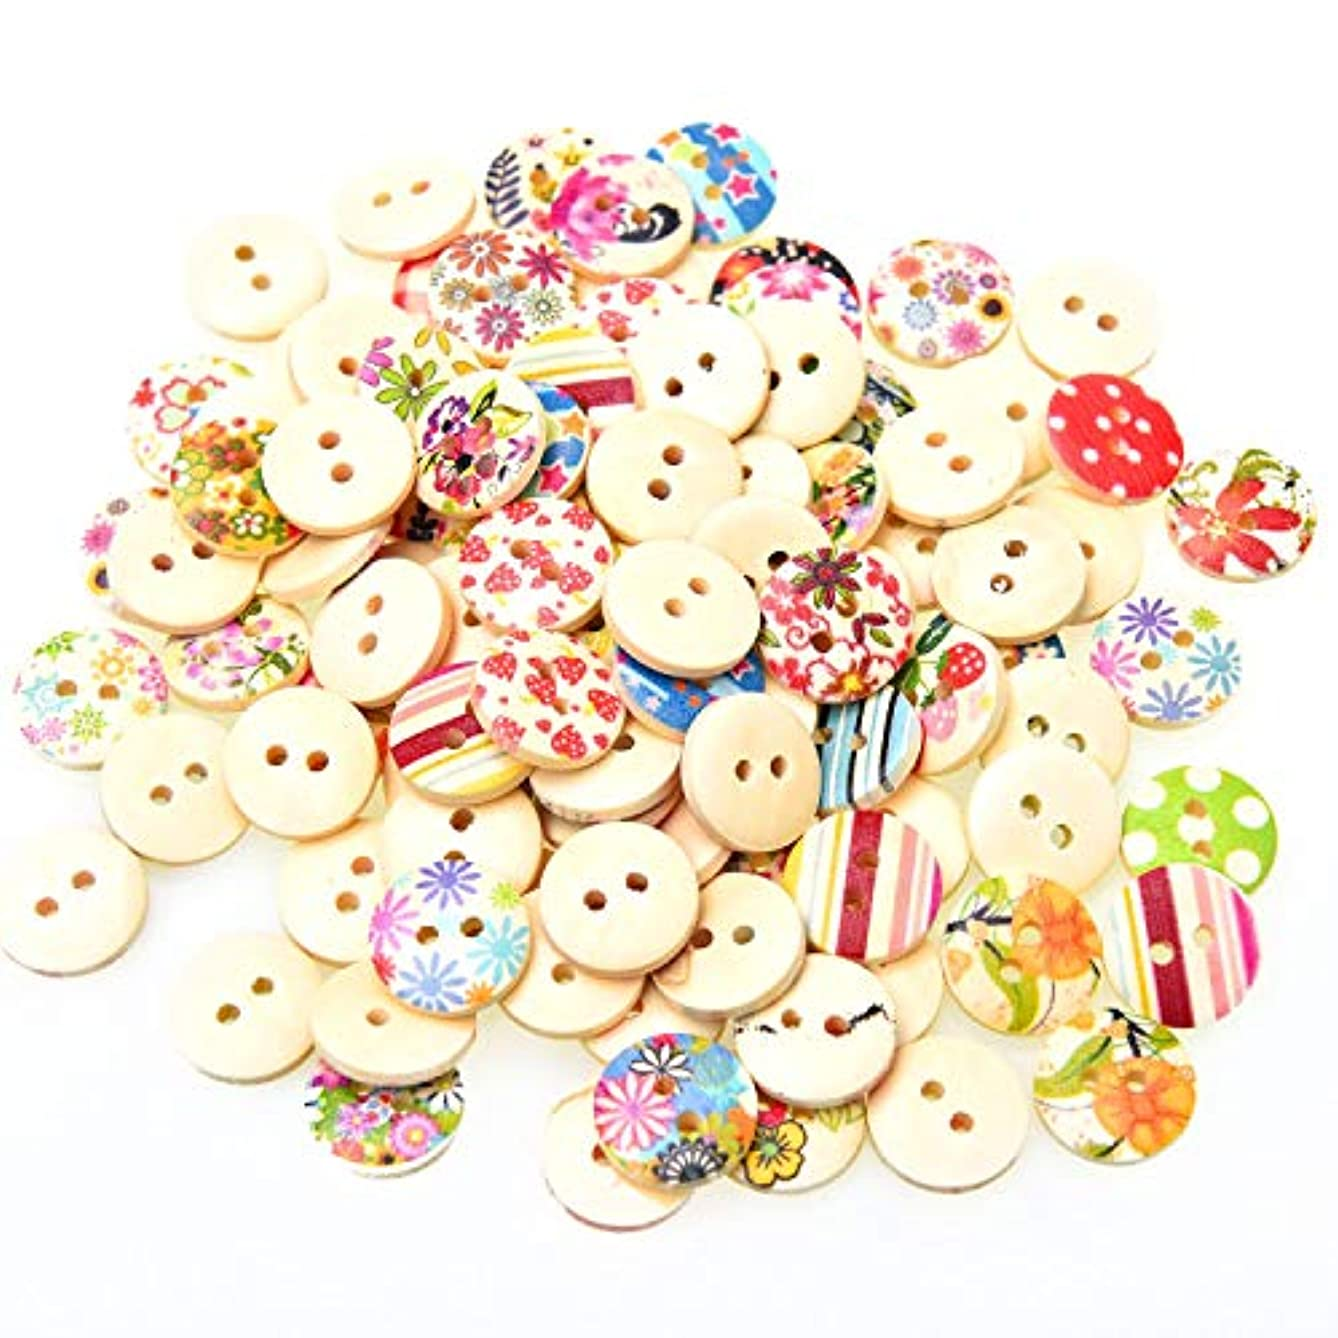 Monrocco 100pcs Mixed Colorful Wooden Buttons 2 Holes Sewing Buttons for Crafts